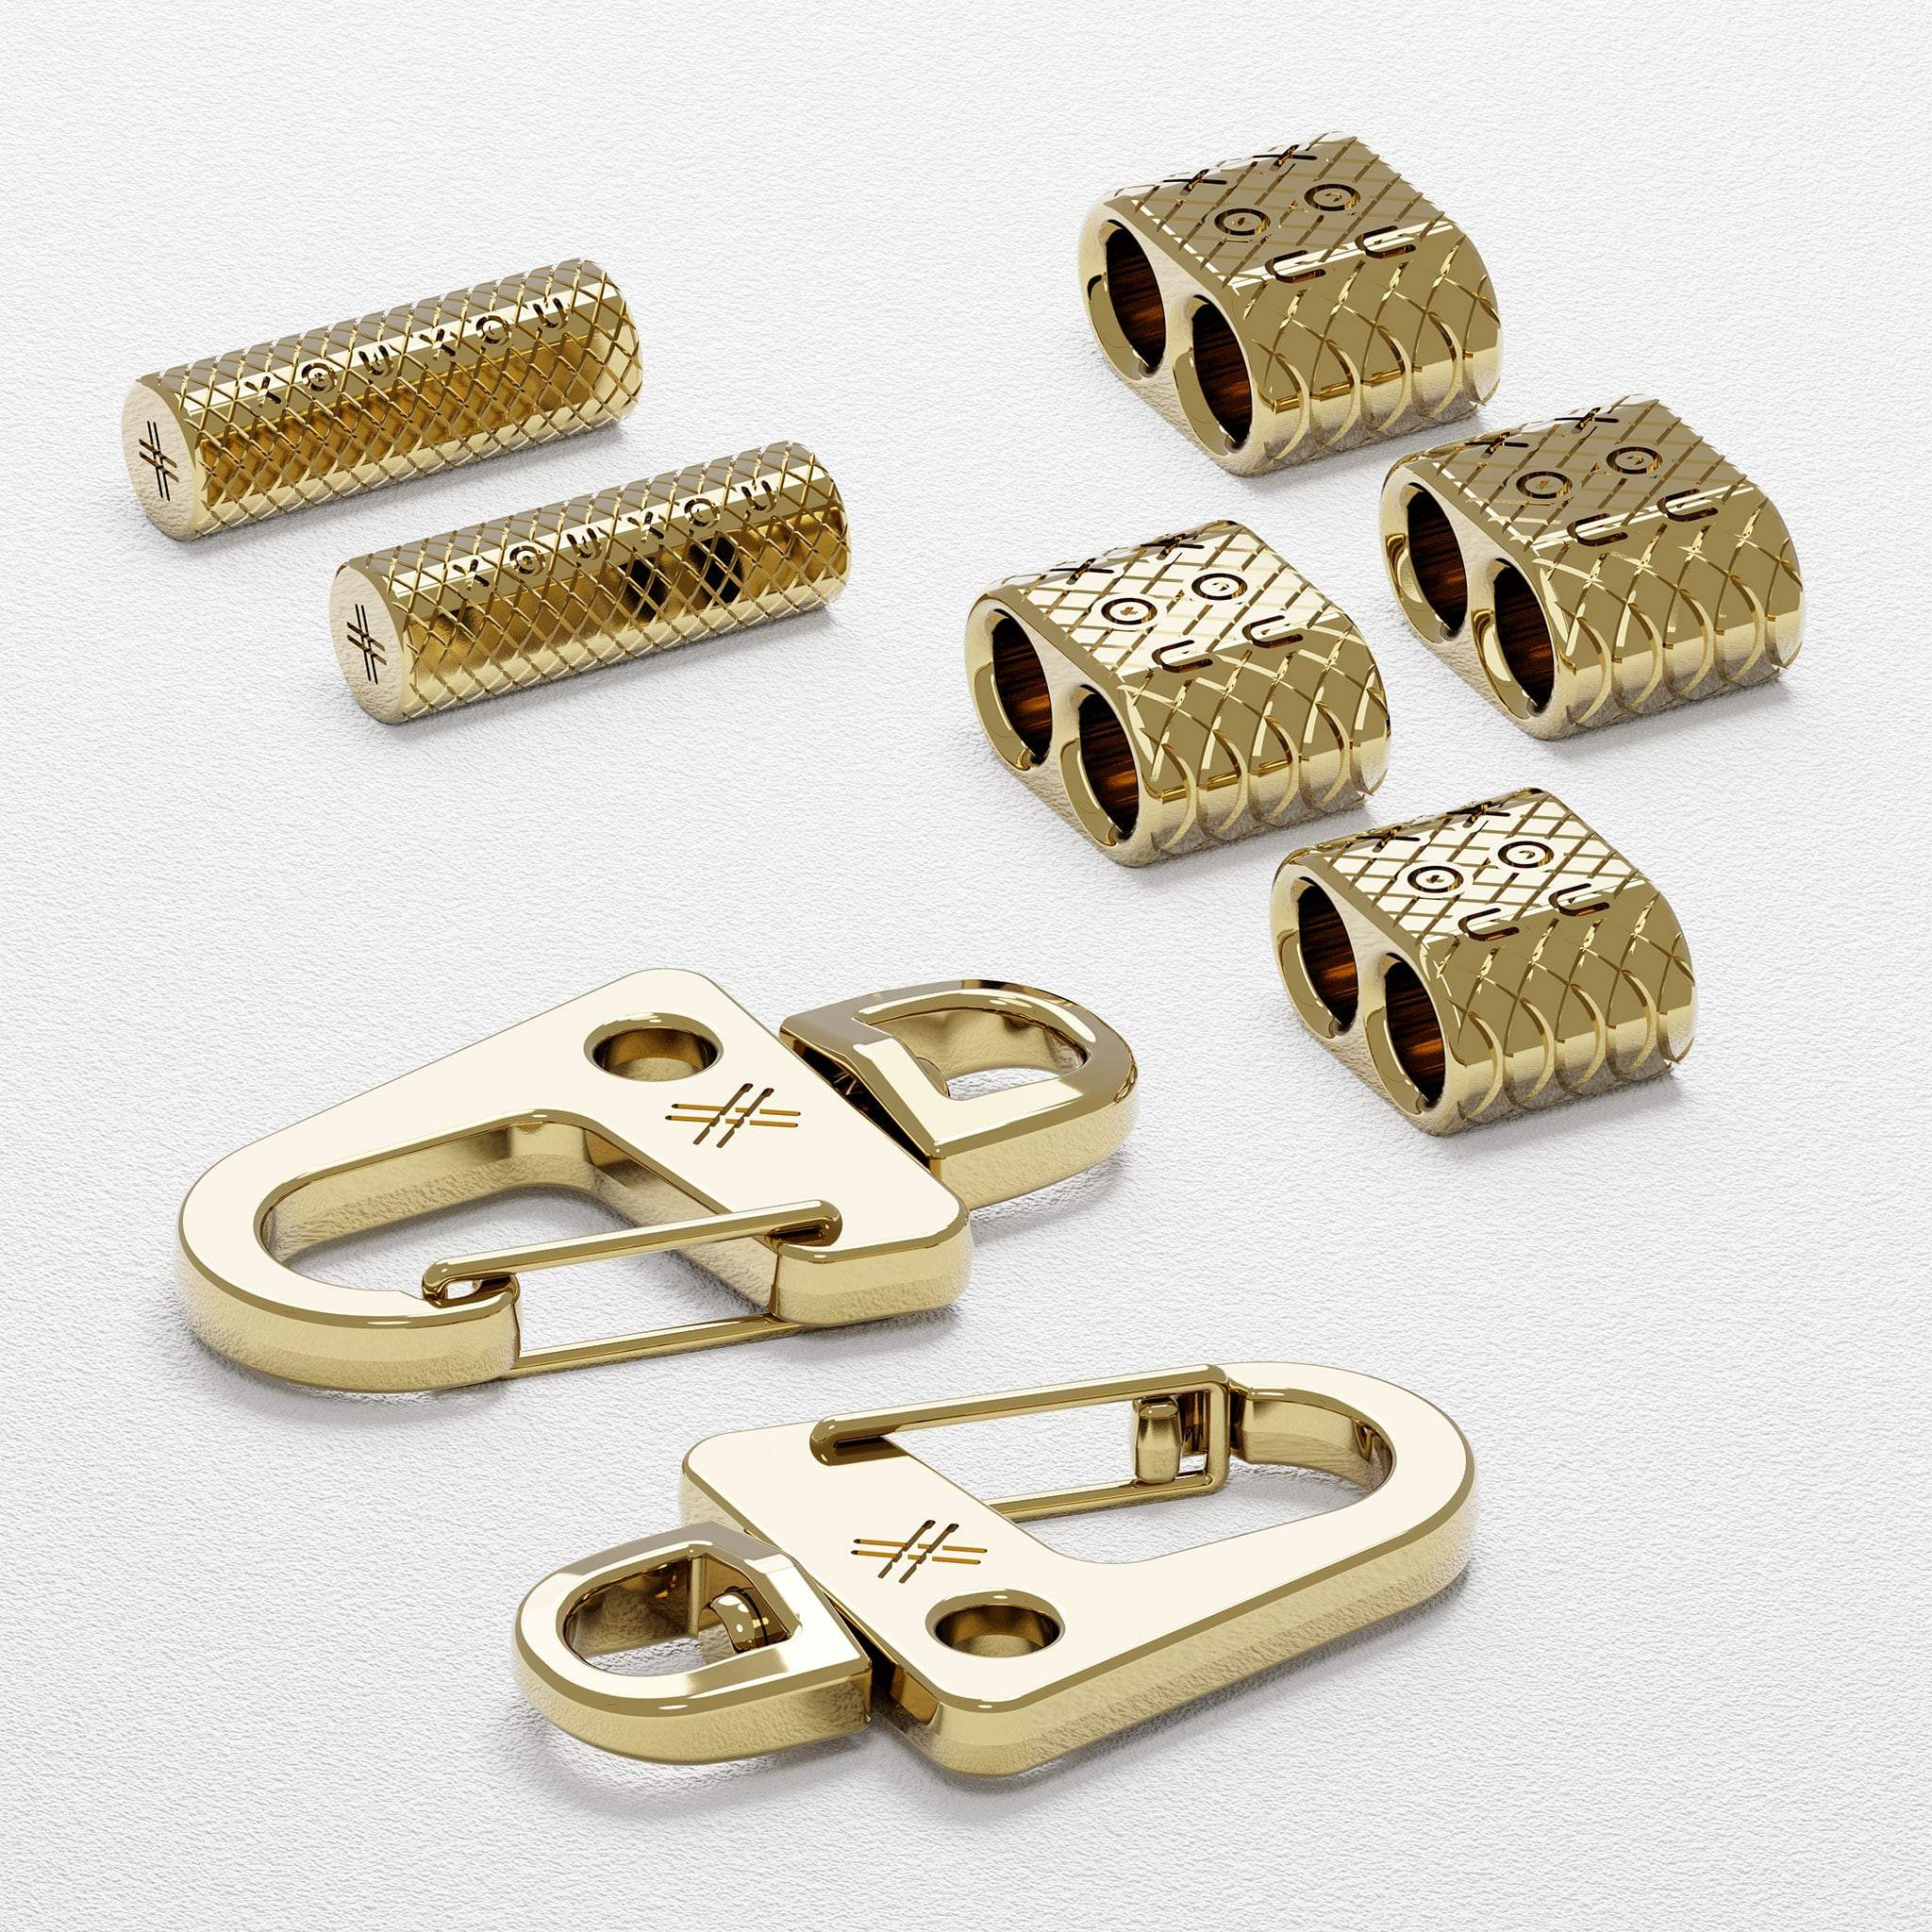 Glossy Gold Carabiner Rope Metal Parts